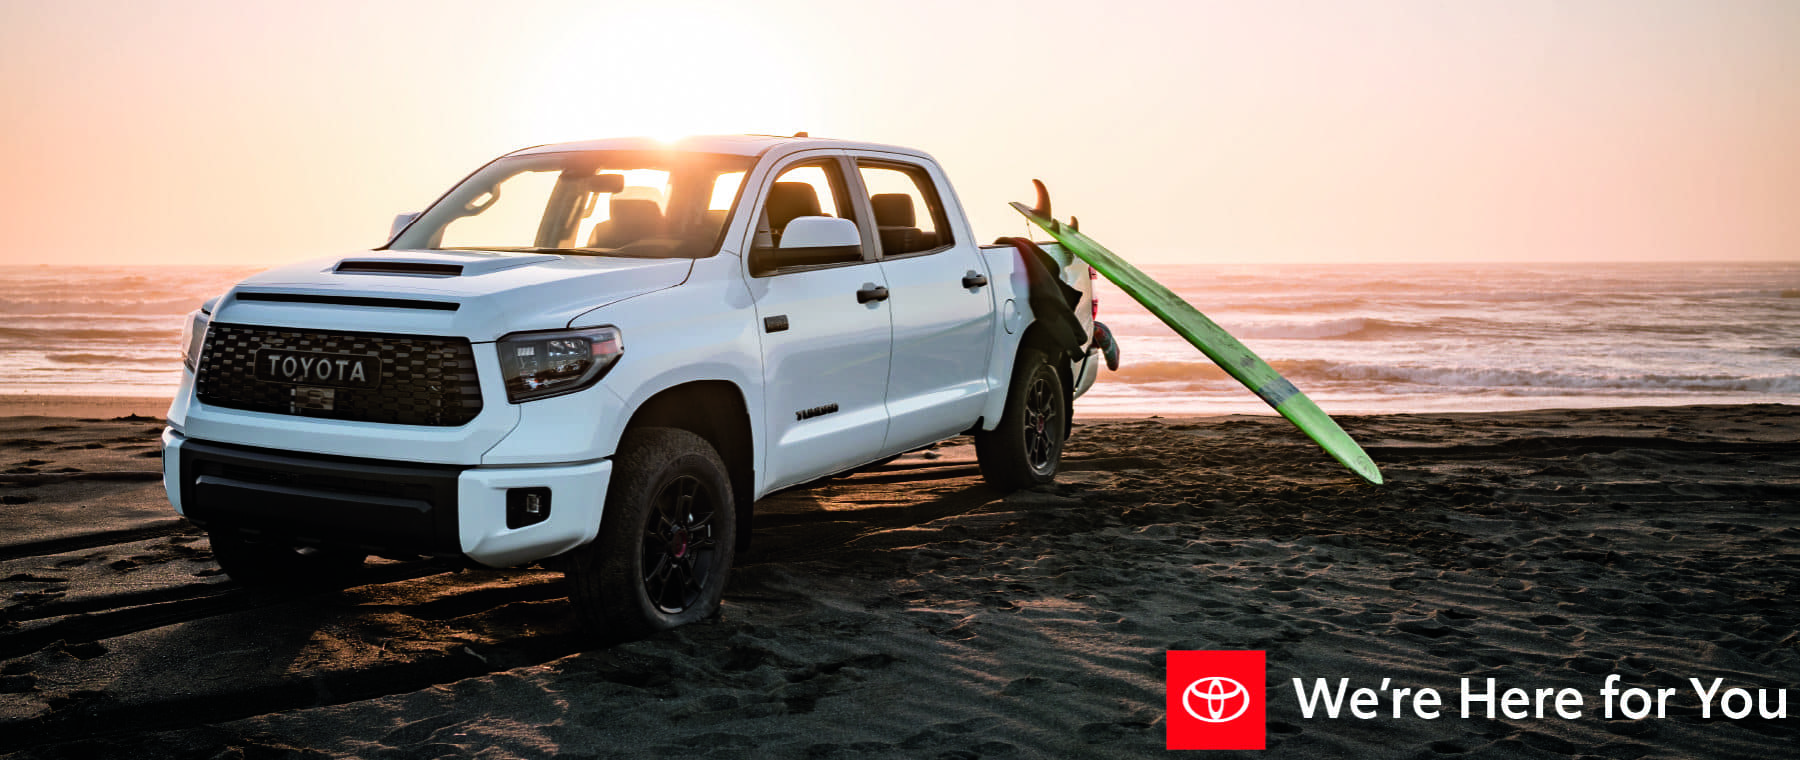 Toyota Tundra: We're Here for You